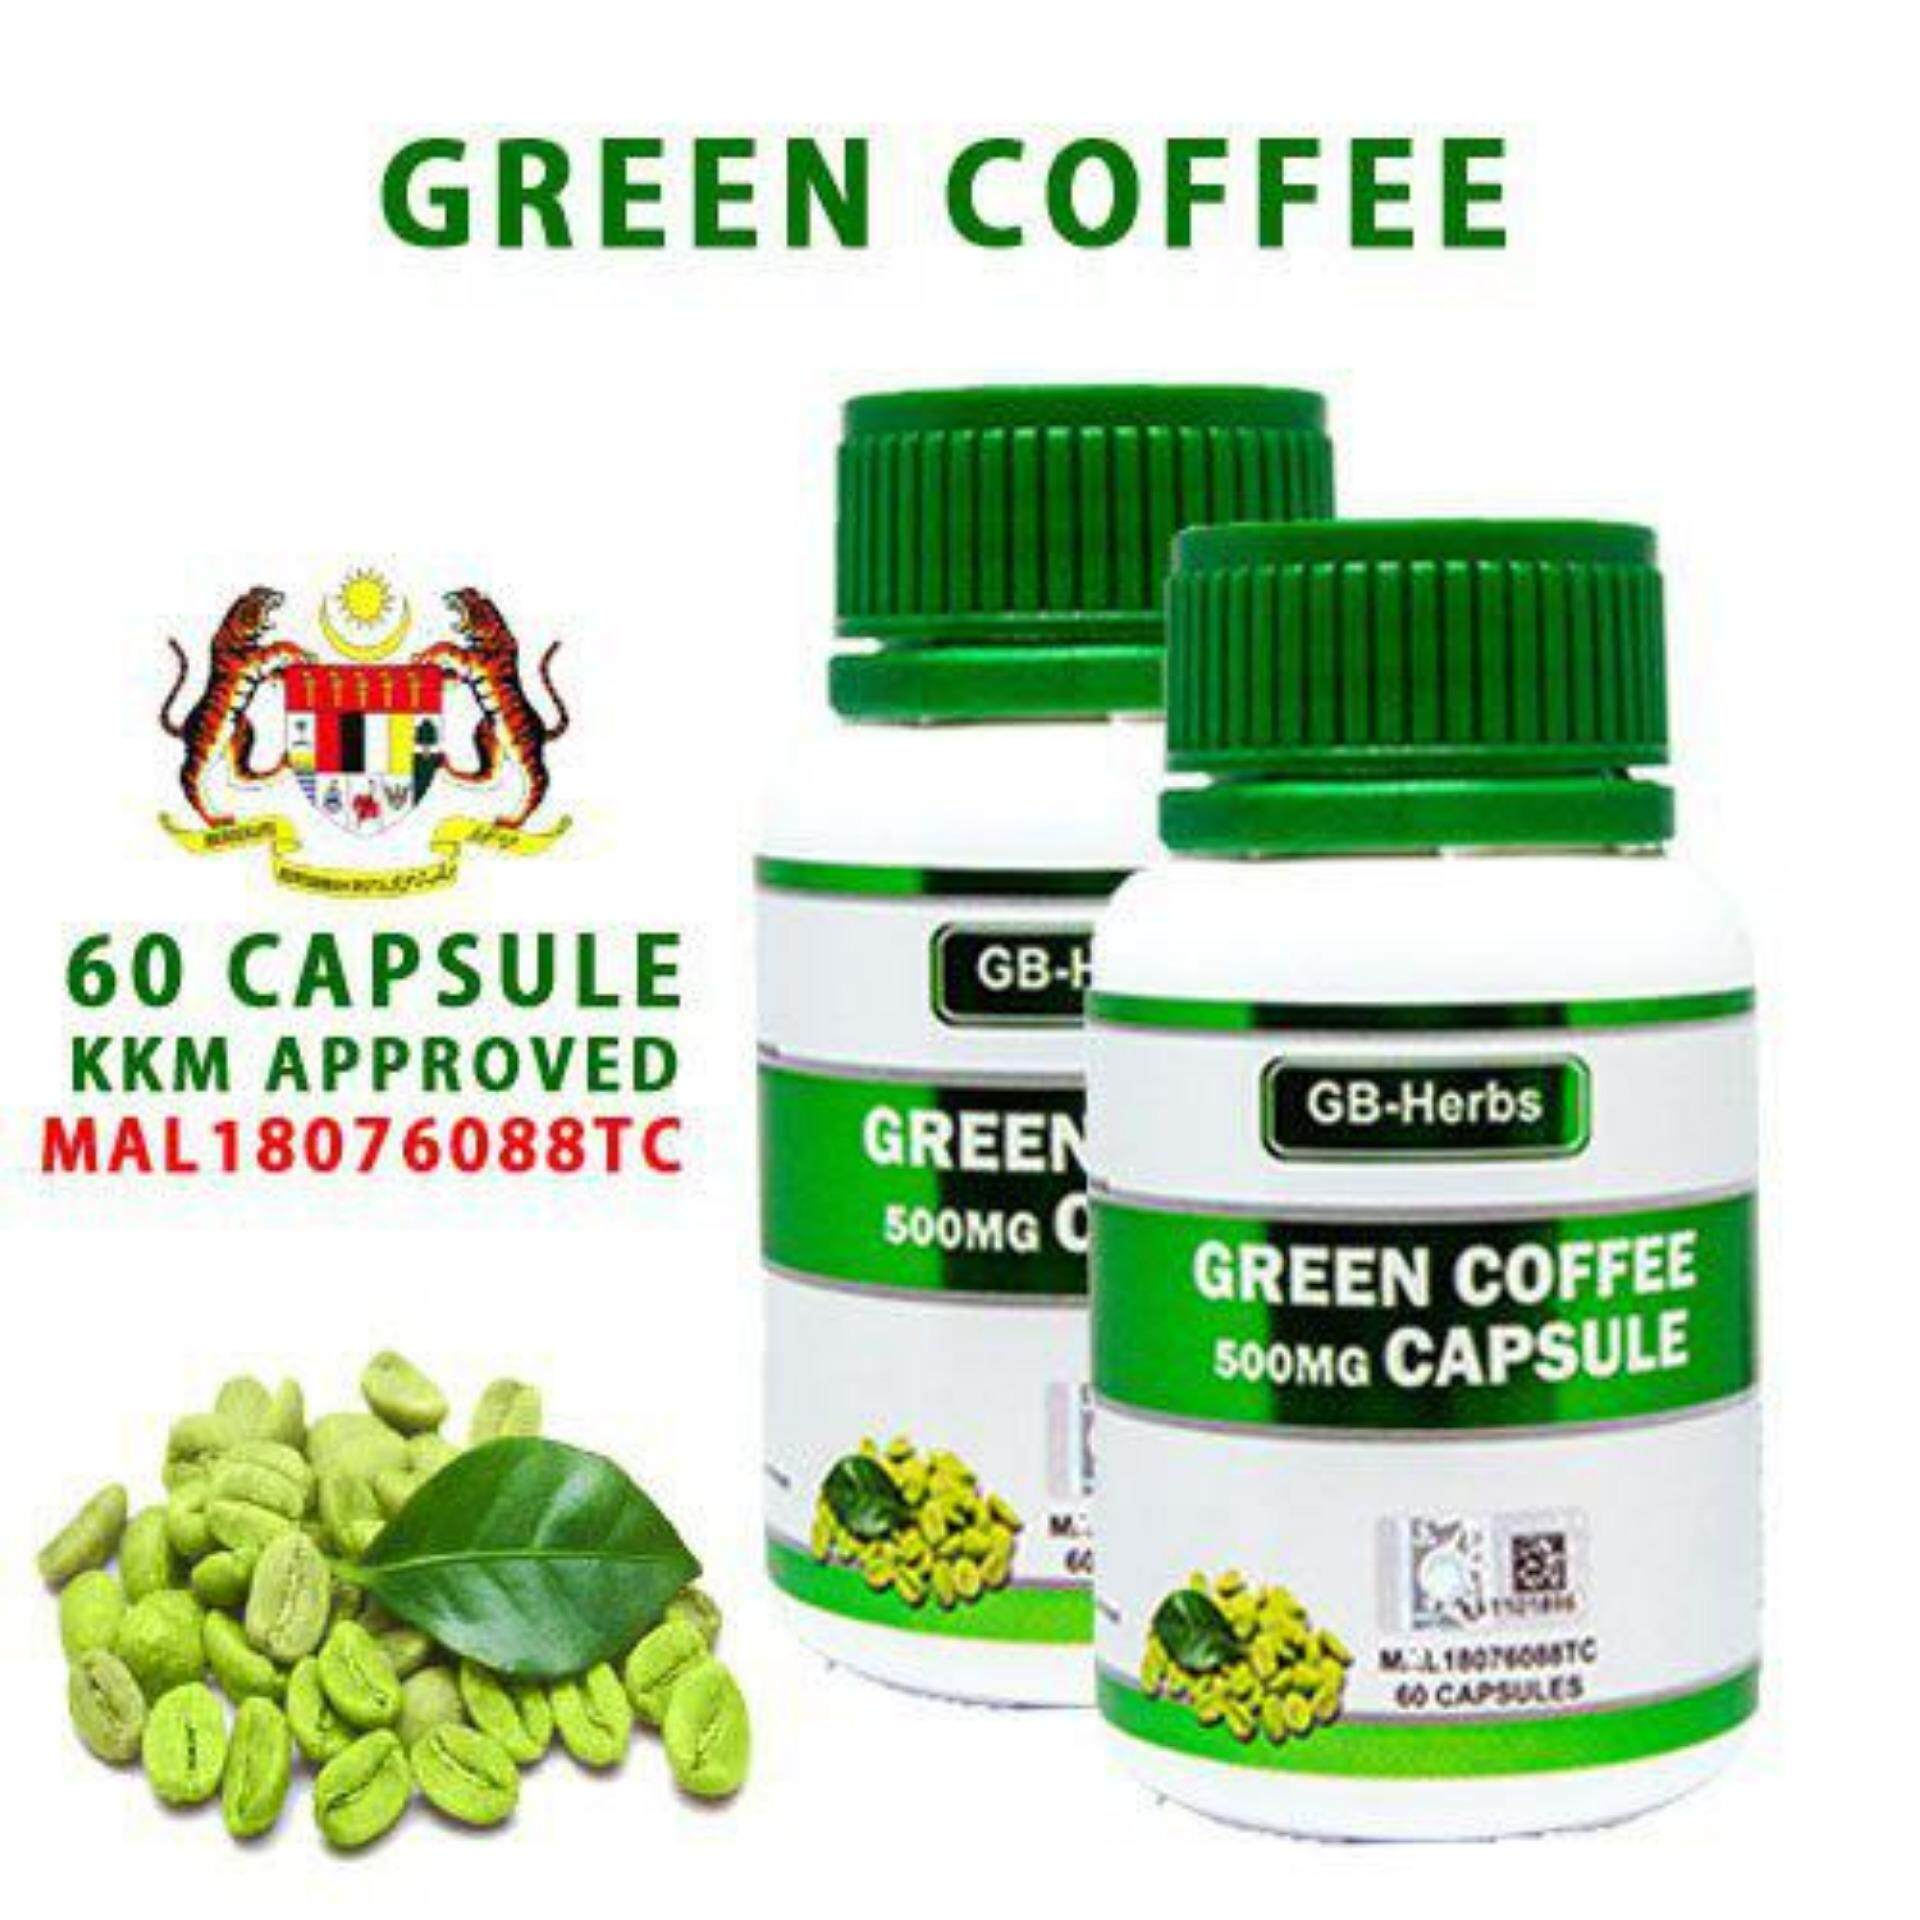 Green Coffee Buy At Best Price In Malaysia Www Capsule Pure Arabica Organic 60 Caps 2bottle